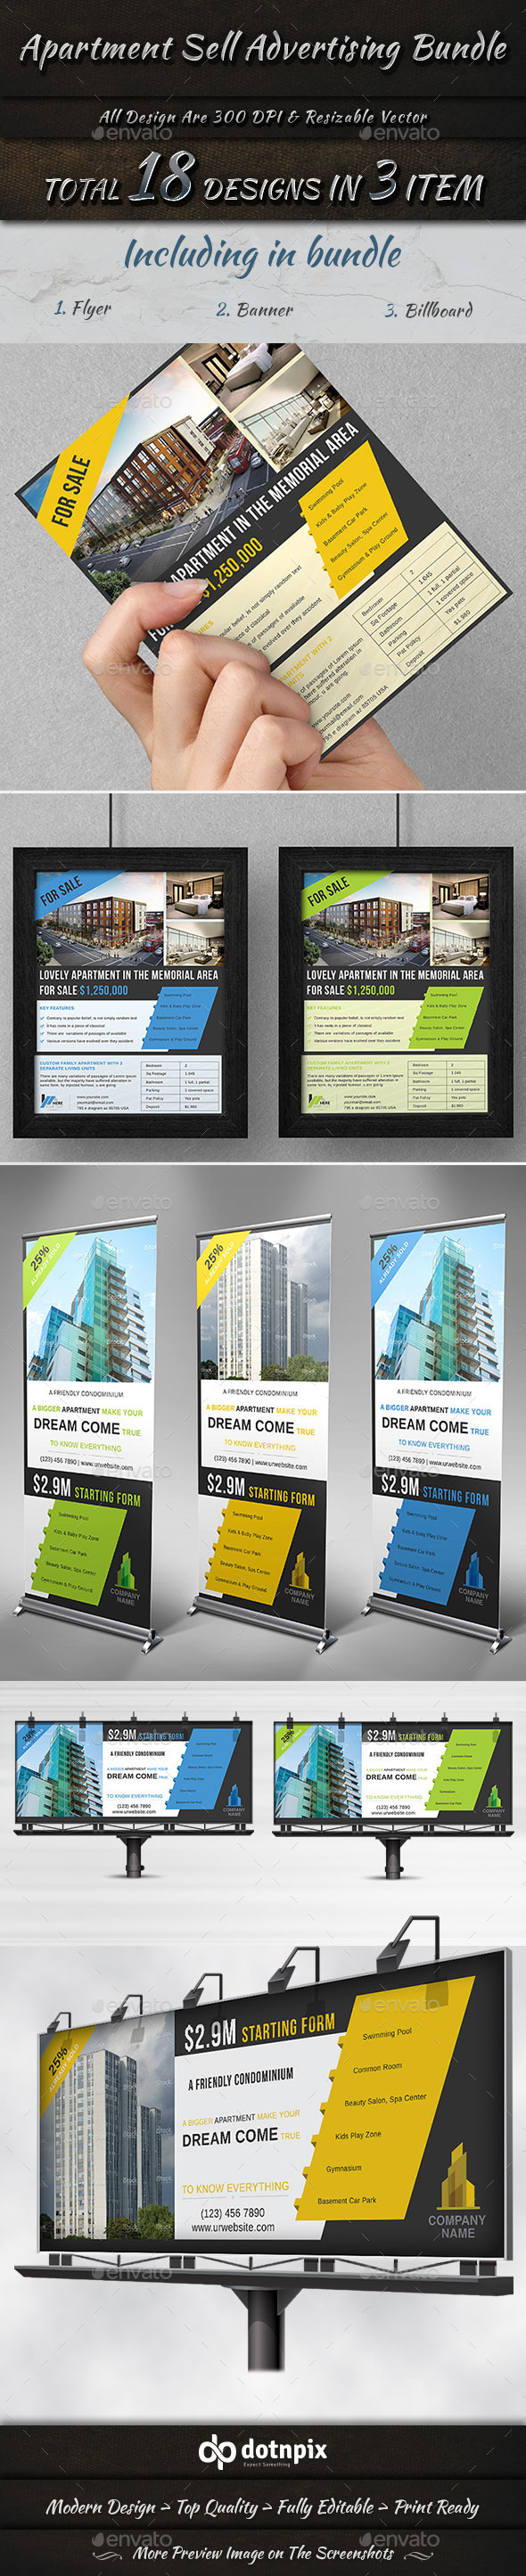 Apartment Sell Advertising Bundle - Commerce Flyers